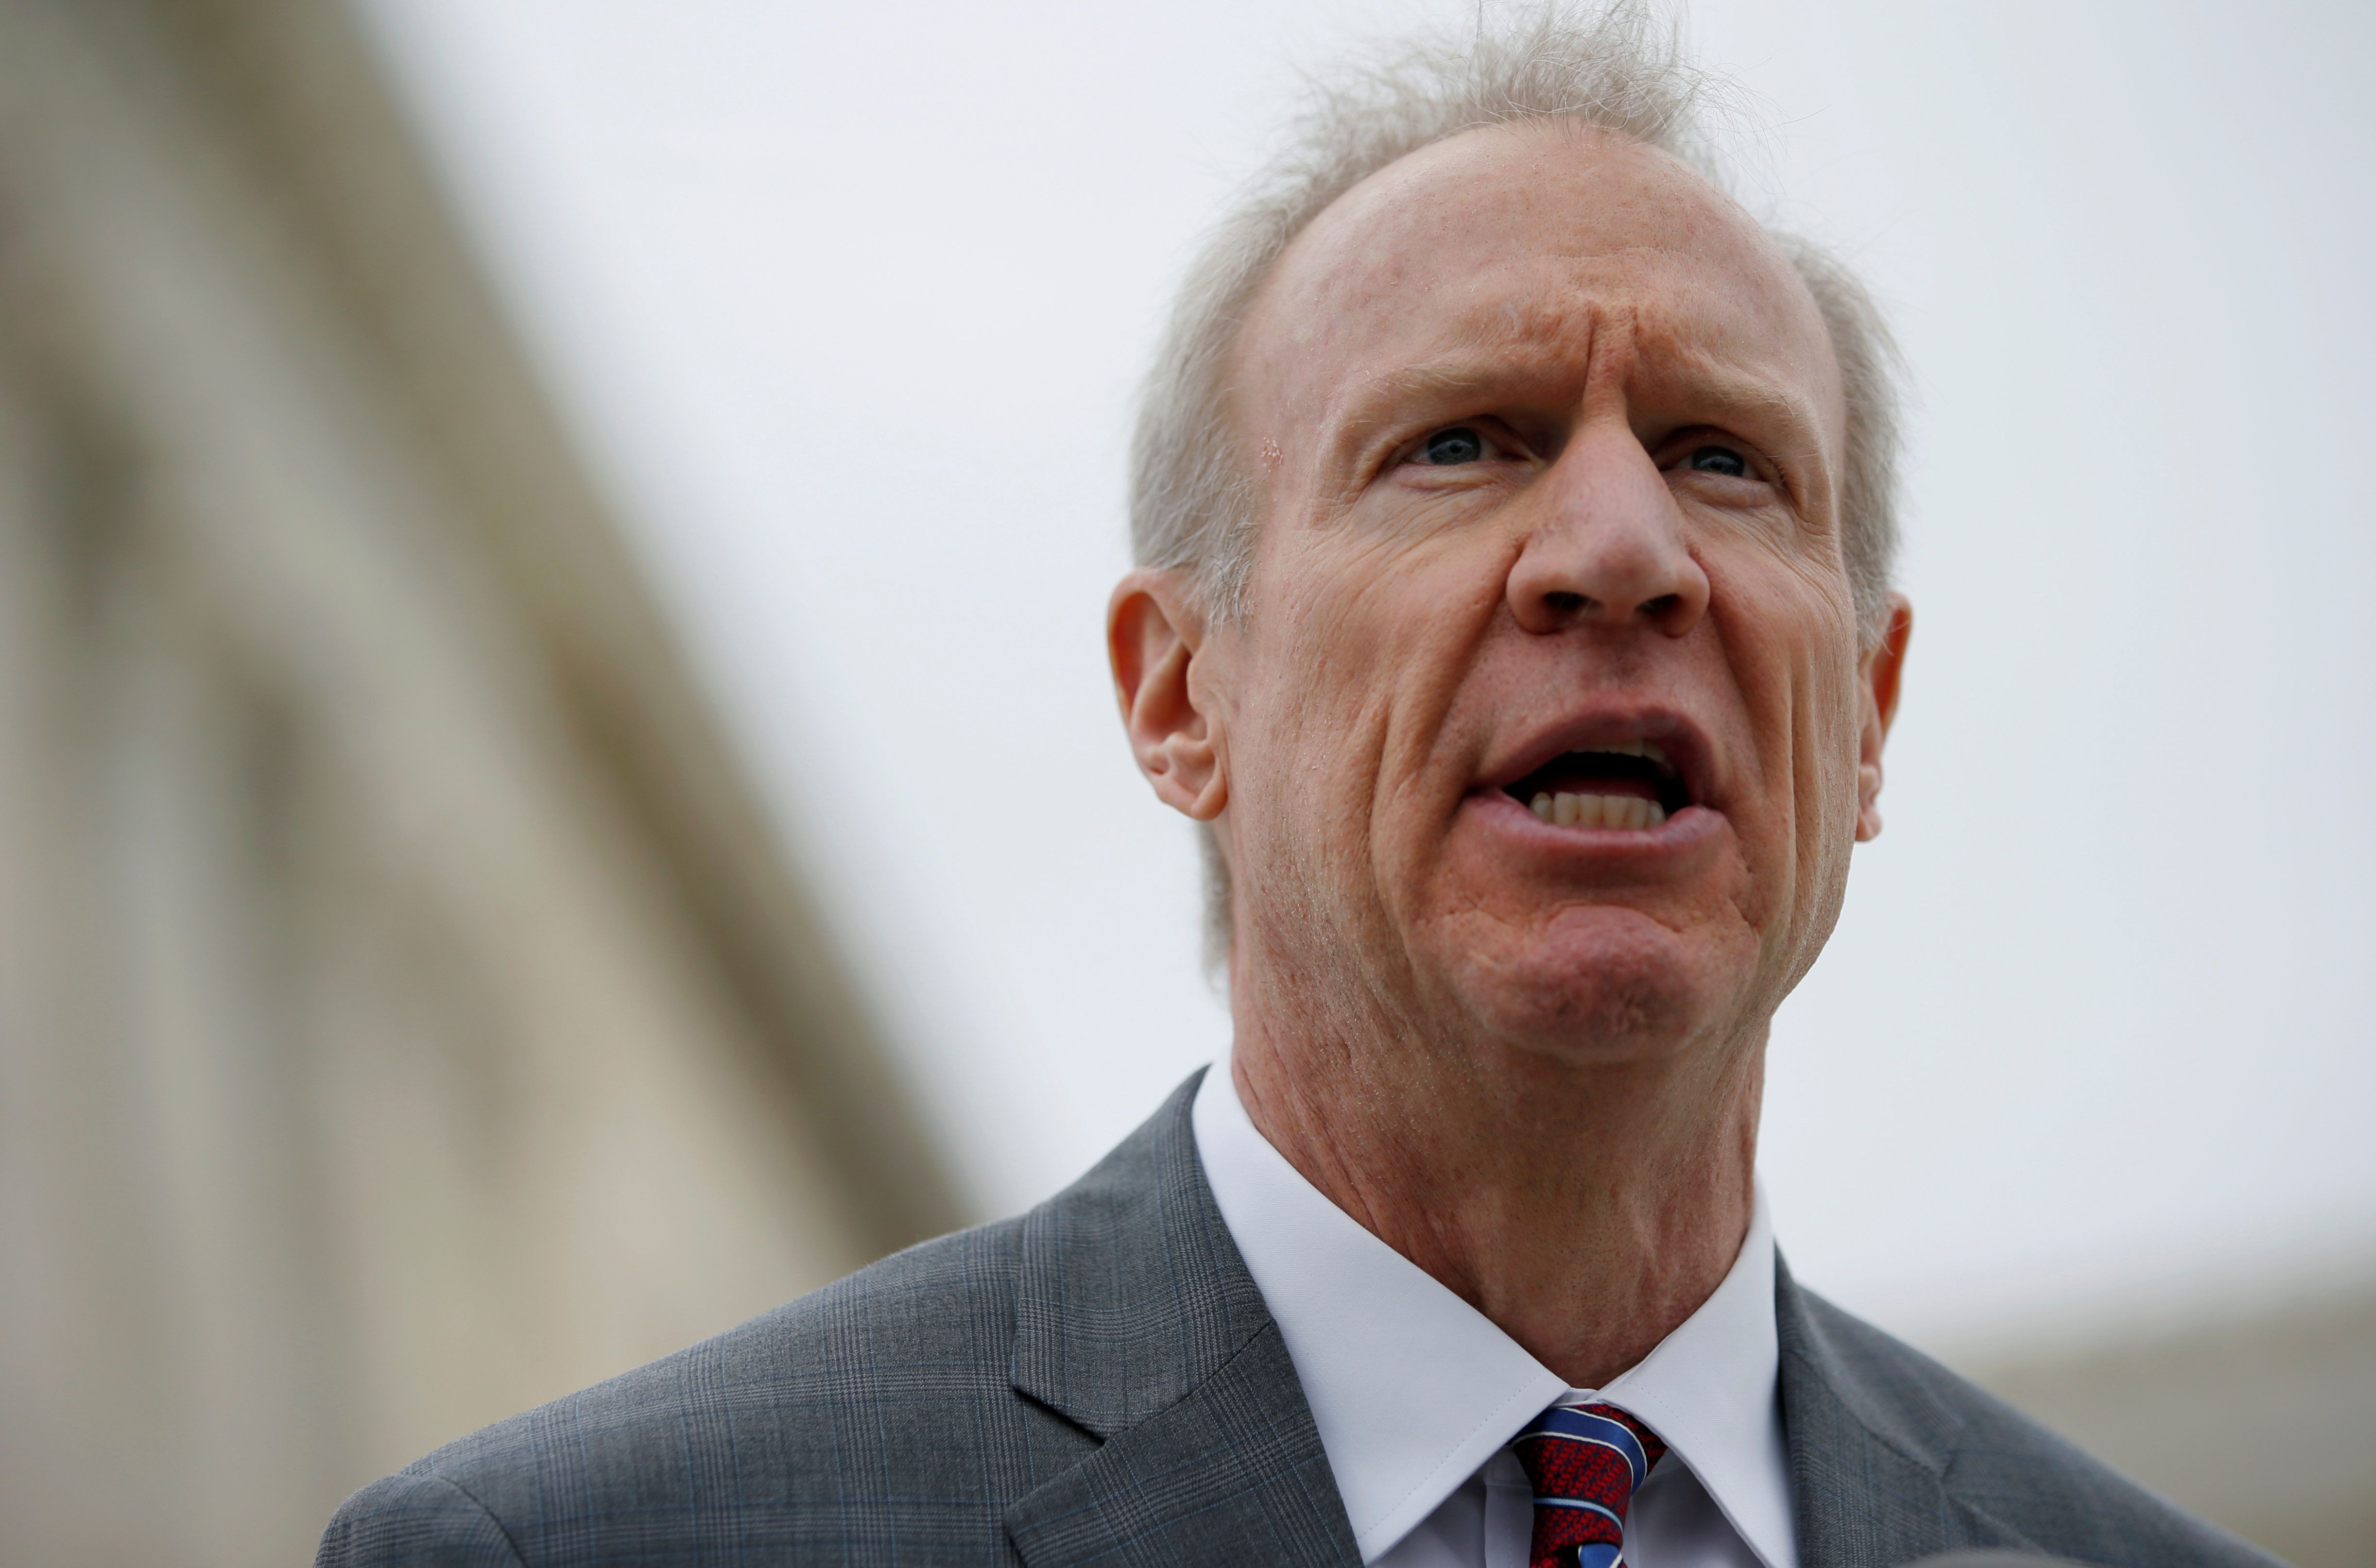 Illinois Gov. Bruce Rauner speaks to the news media outside of the United States Supreme Court in Washington, U.S., February 26, 2018. REUTERS/Leah Millis